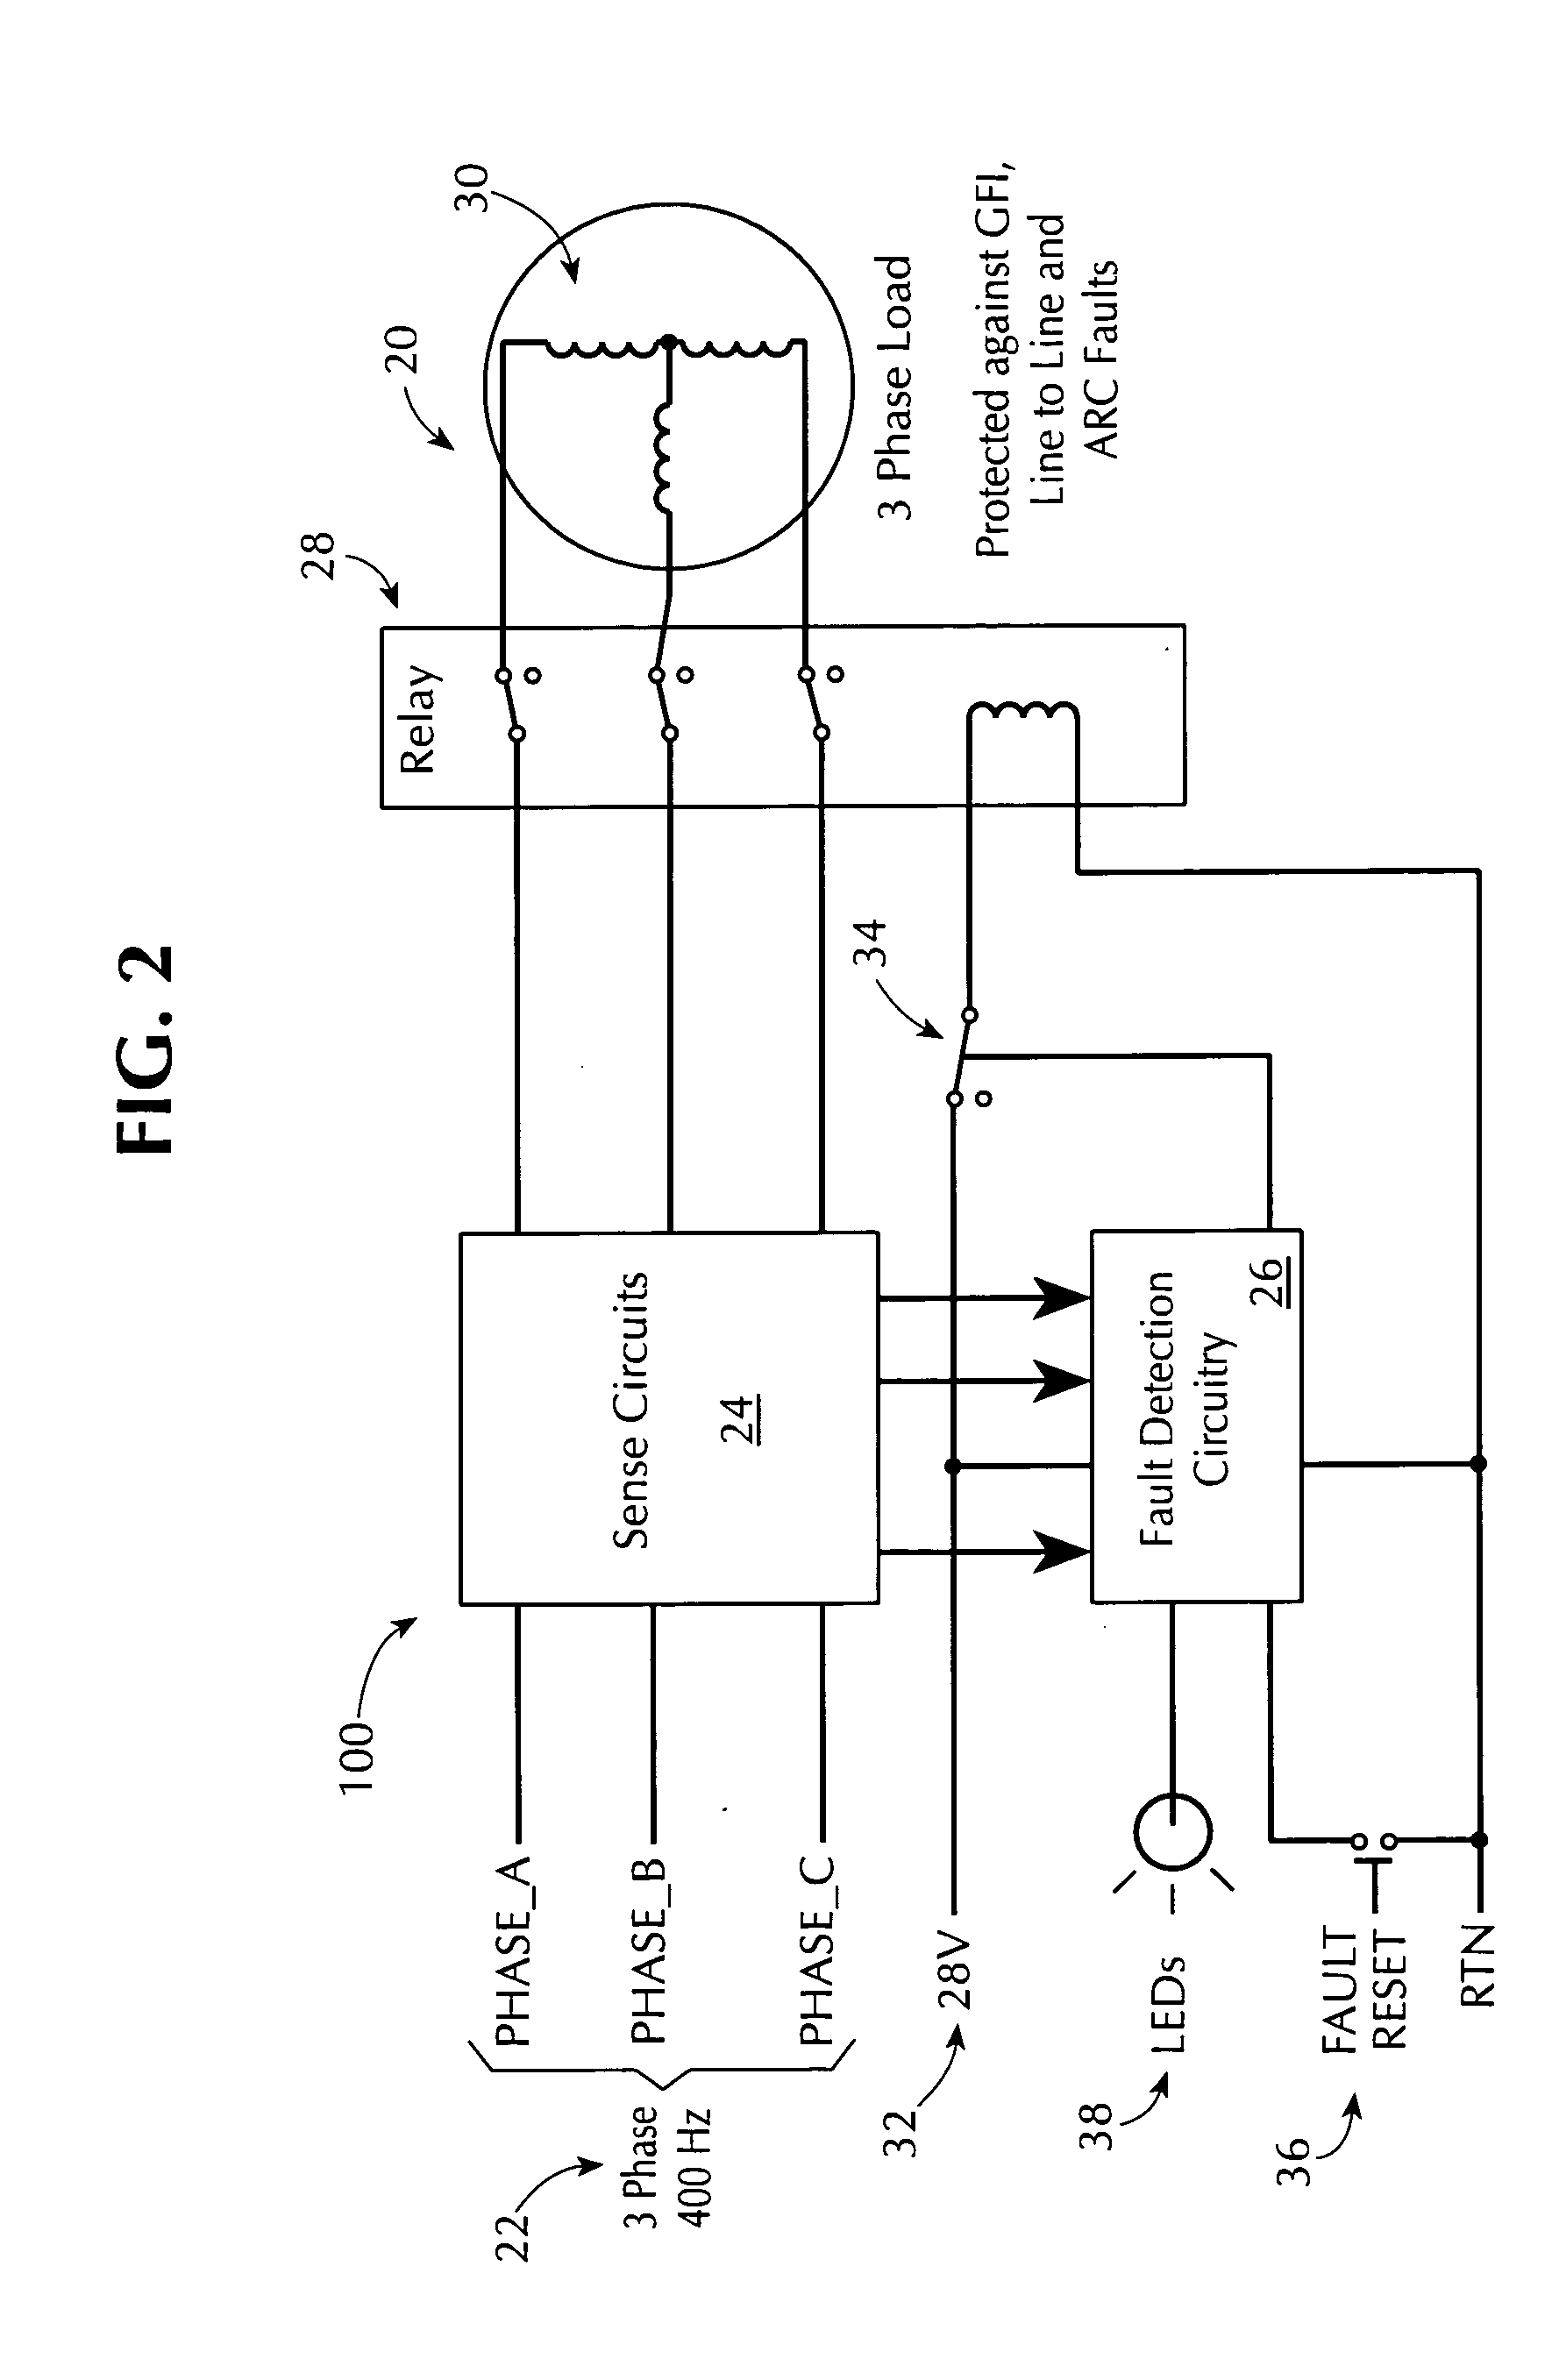 Patent Us20050018371 Systems And Methods For Fault Based Power Arcfault Circuit Breakers Prevent Fires Absolute Electric Drawing